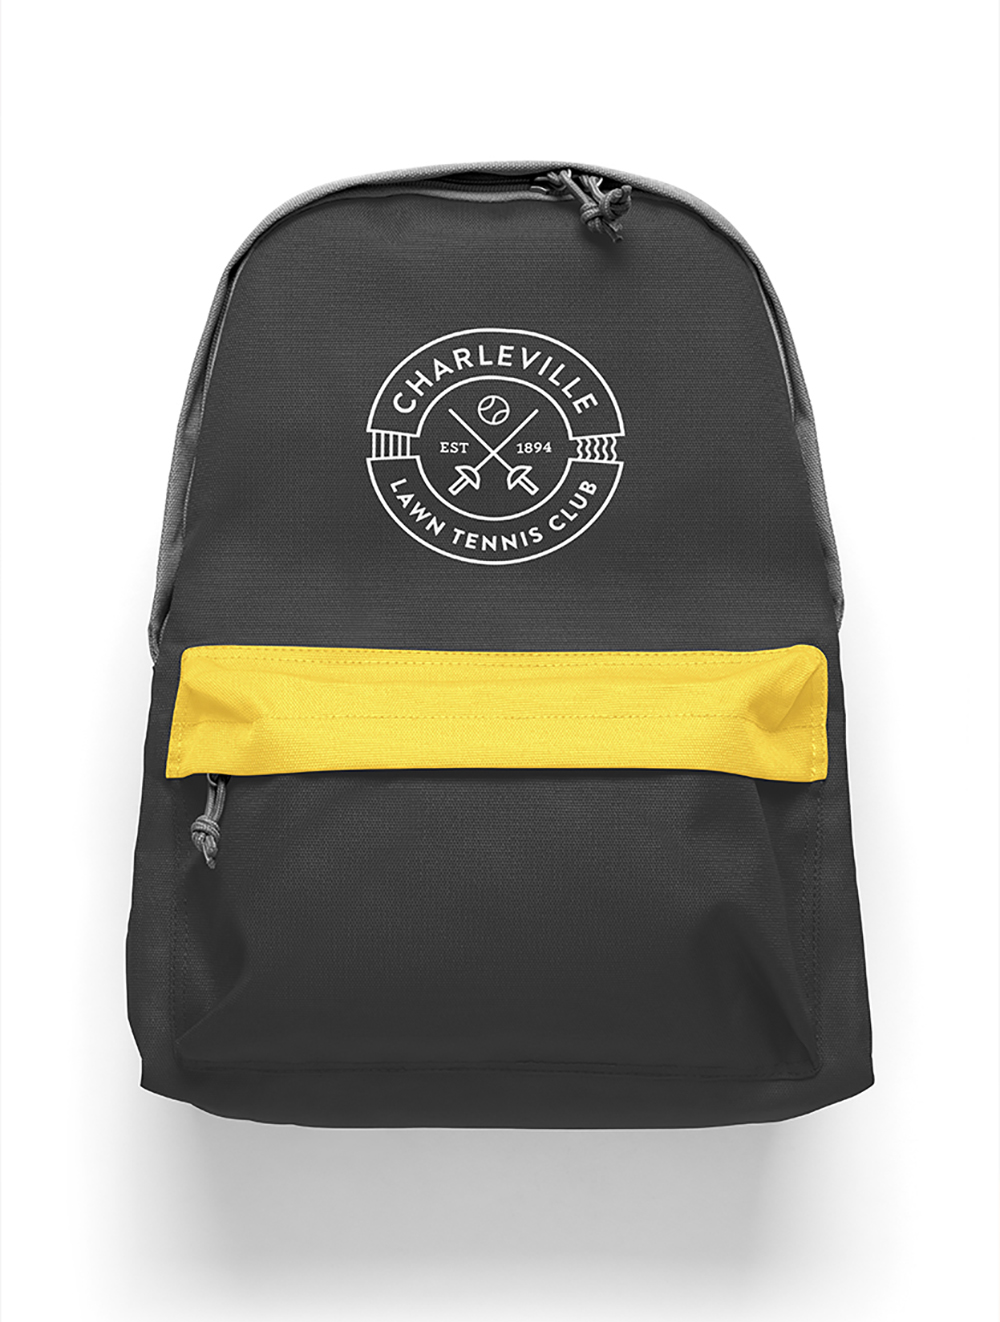 Charleville LTC backpack